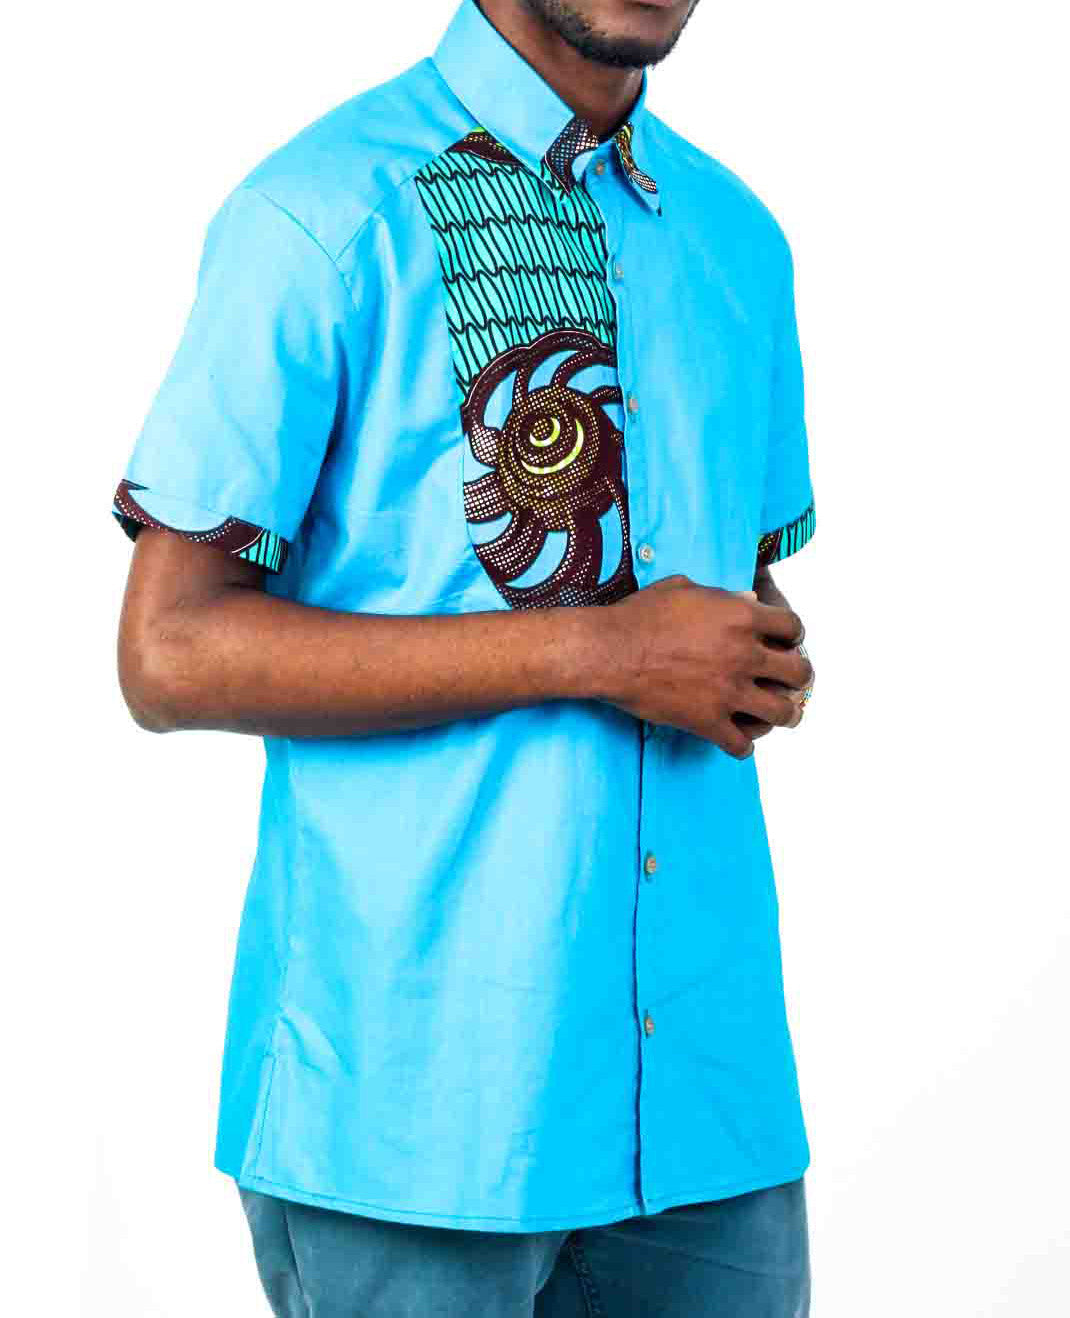 Baby Blue African Print Shirt - OHEMA OHENE AFRICAN INSPIRED FASHION  - 1